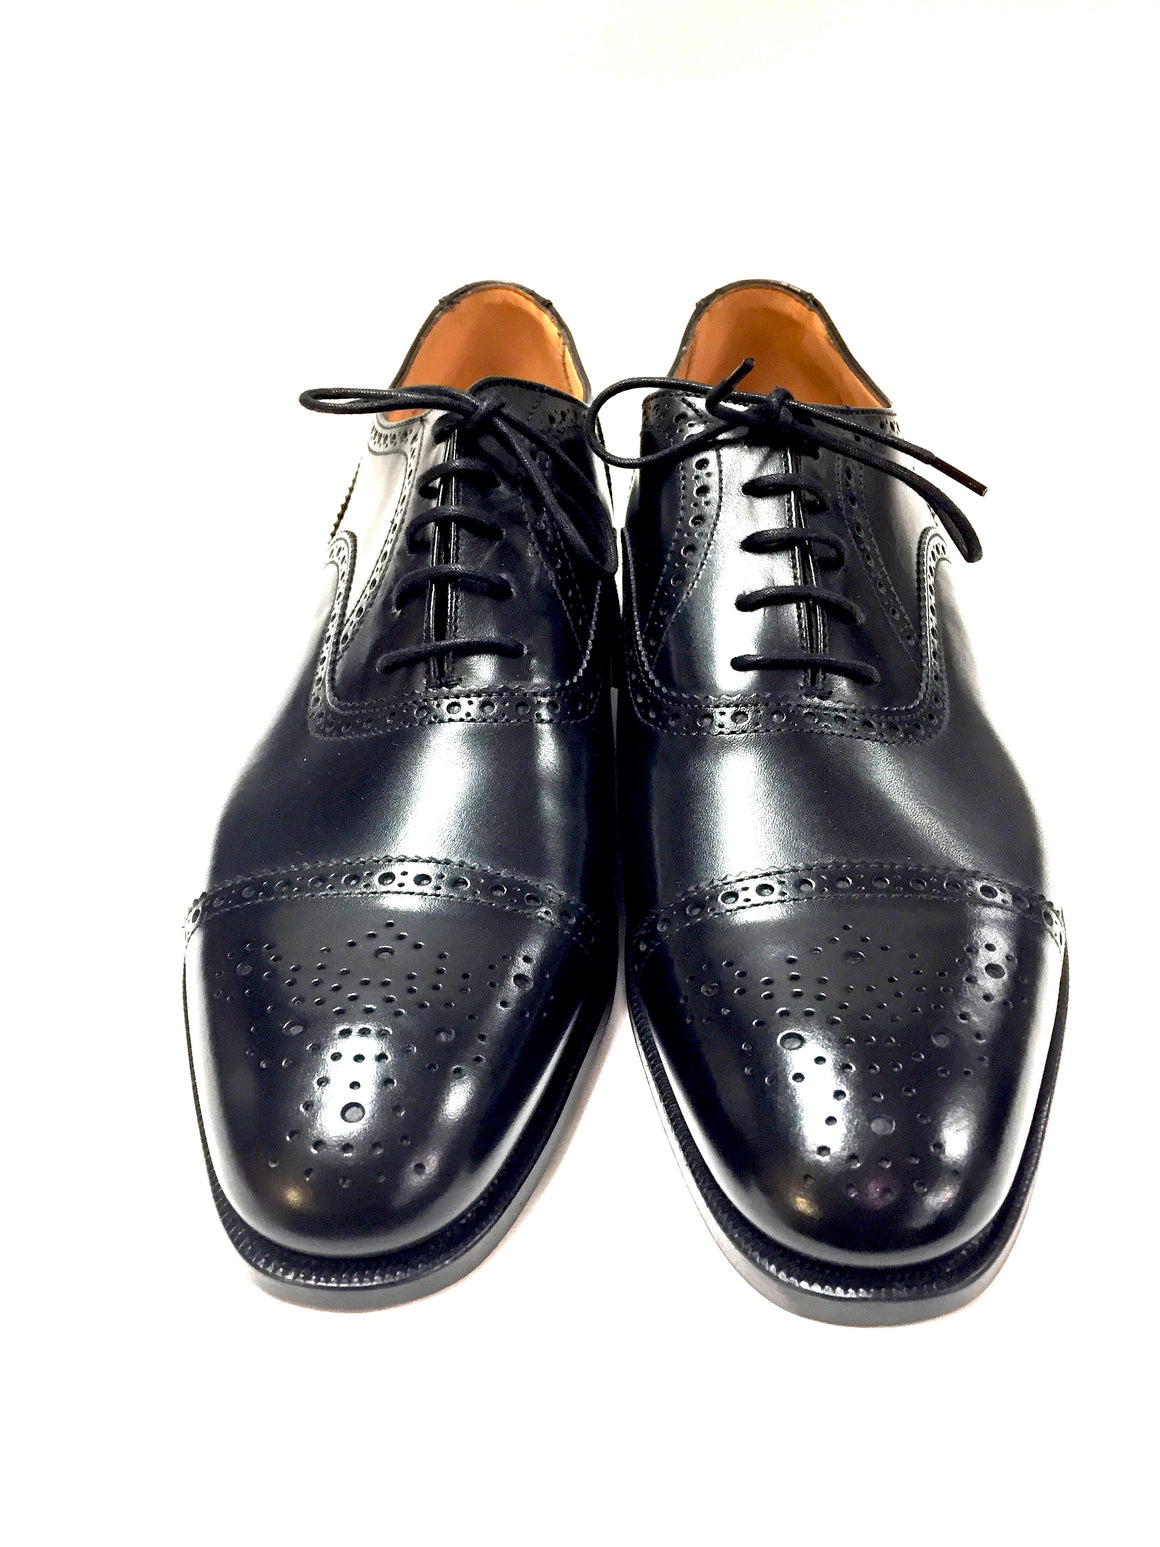 PEAL & Co. for BROOKS BROTHERS Black Leather U-Tip Men's Brogue Oxfords Shoes Size: 9E / 42